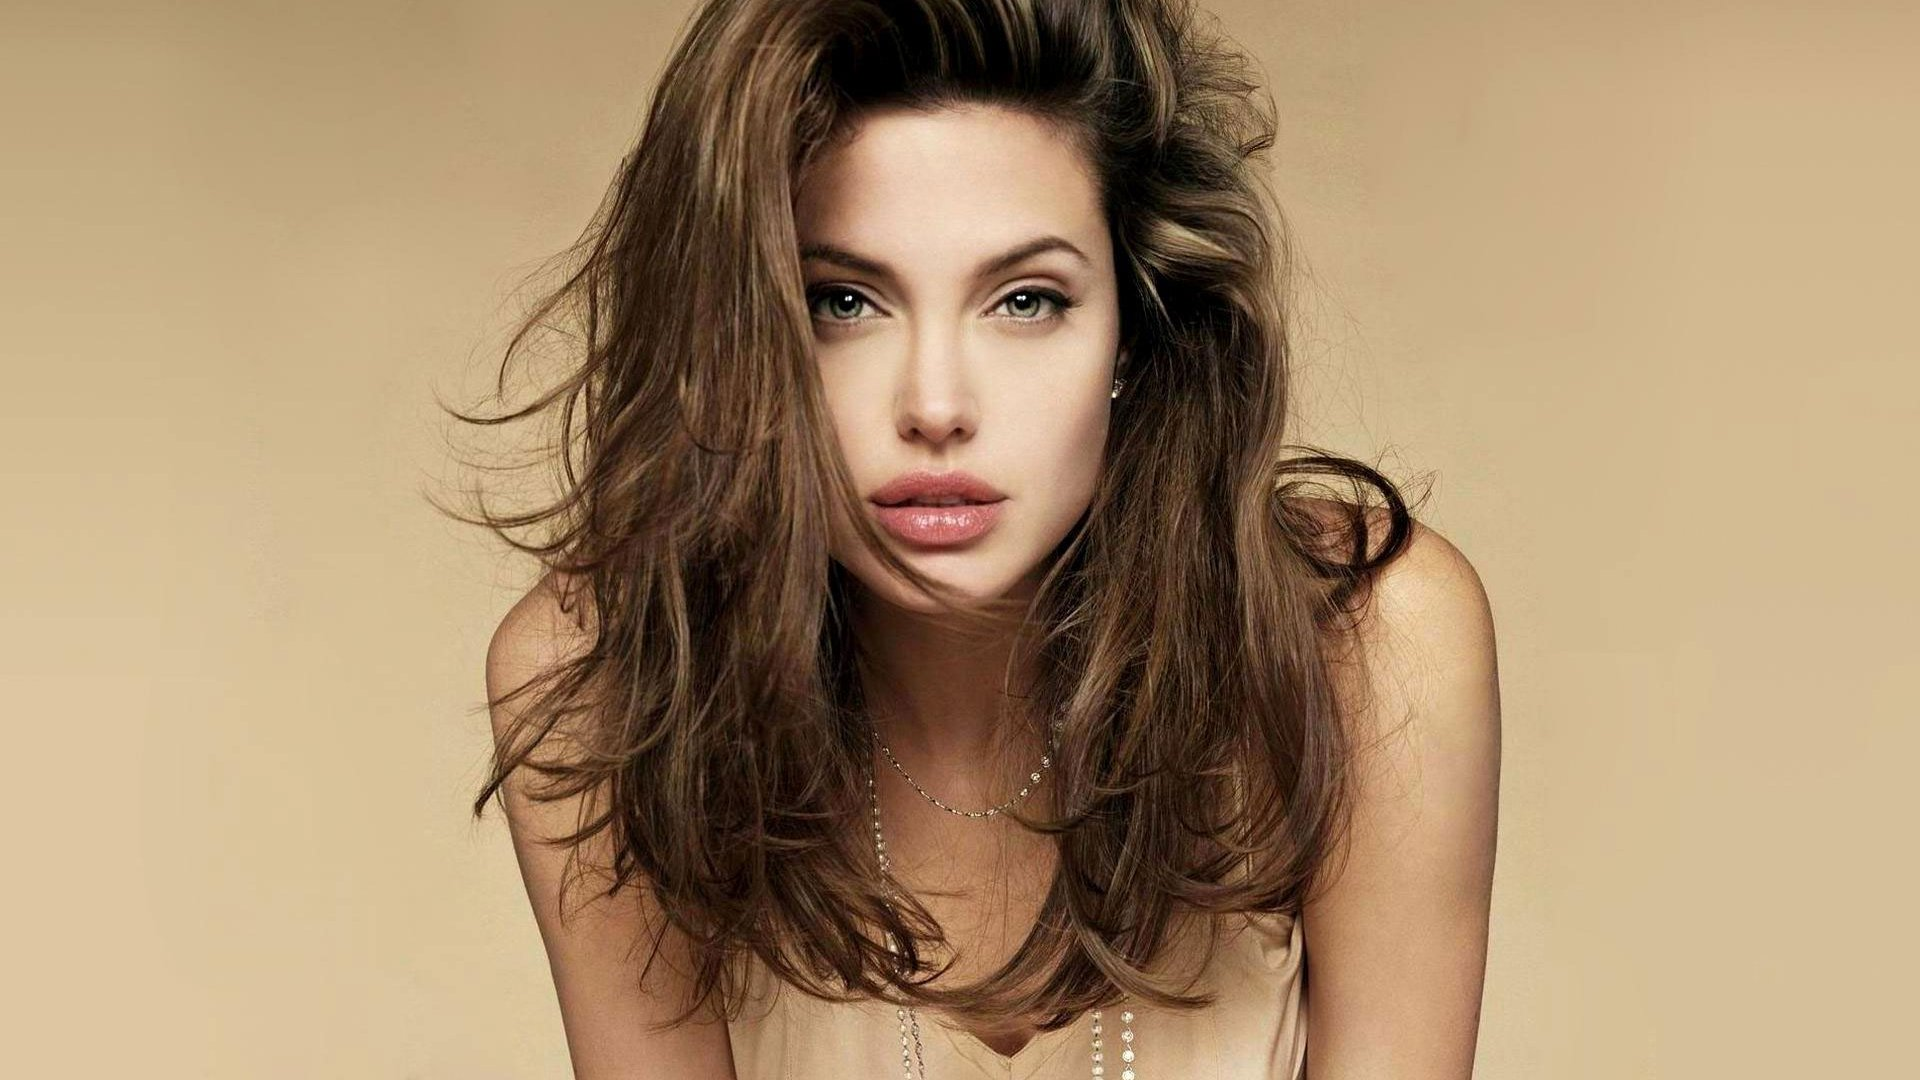 Angelina Jolie Nua 464 angelina jolie hd wallpapers | background images